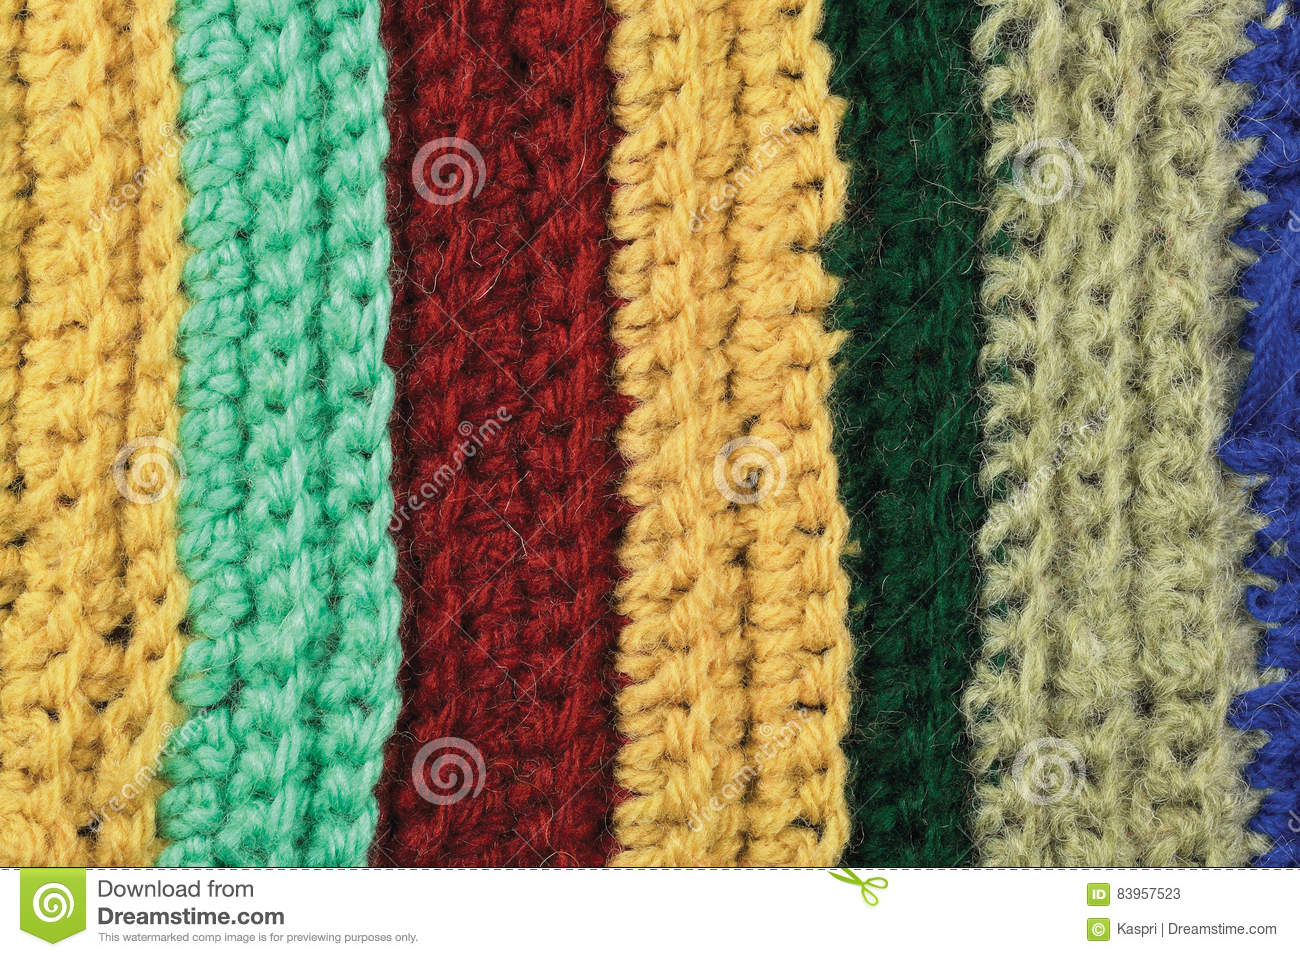 Knitting Stitch Orientation : Green Wool And Garter Stitch On Knitting Needle Royalty-Free Stock Photograph...